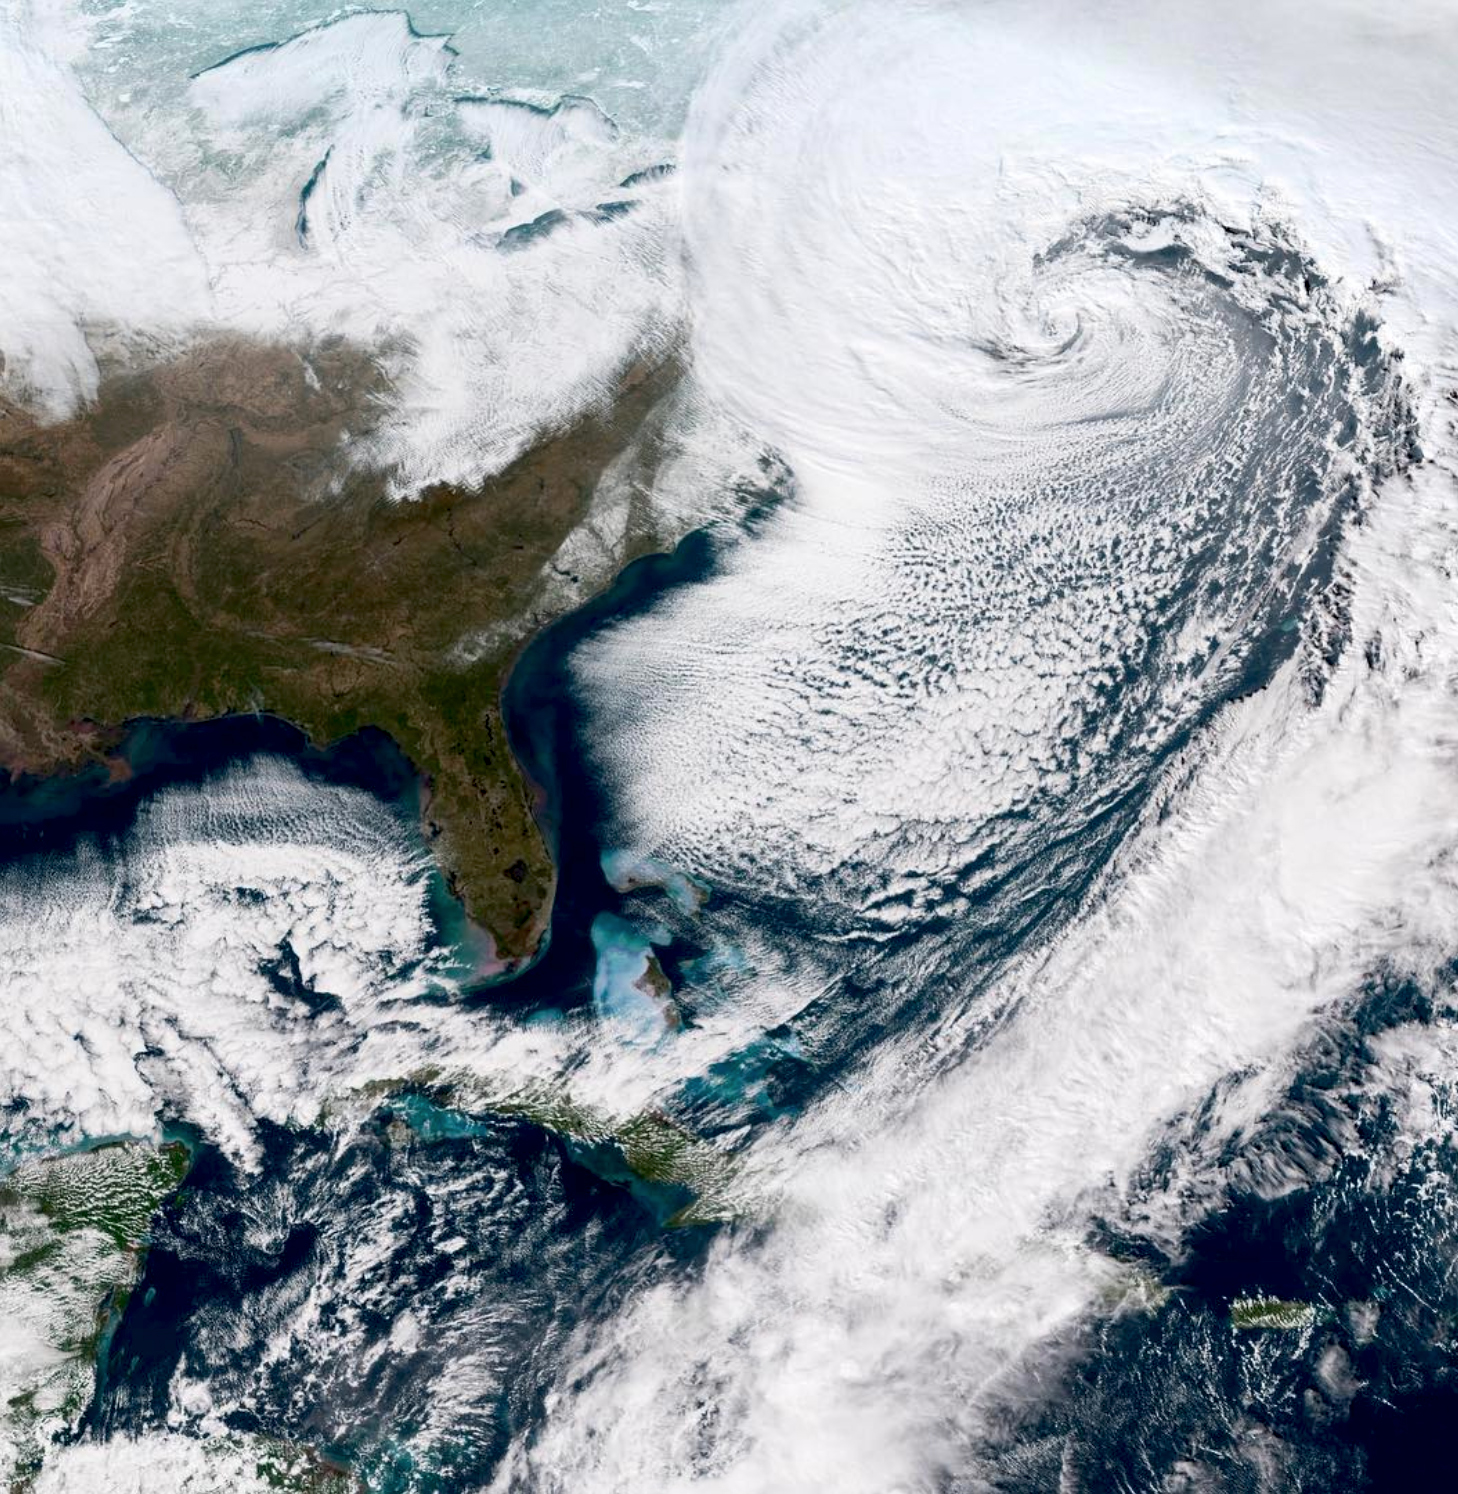 """Check out this incredible view of the """"Bomb Cyclone"""" - the powerful winter storm currently making its way toward the northeastern United States. From this vantage point in outer space, we can see the center of the low pressure area and a thick band of clouds bringing even more snow and gusty winds from the Mid-Atlantic states towards New England. The term """"bomb cyclone"""" refers to the intensification of the storm that happens when an extreme drop of pressure occurs in a short period of time."""